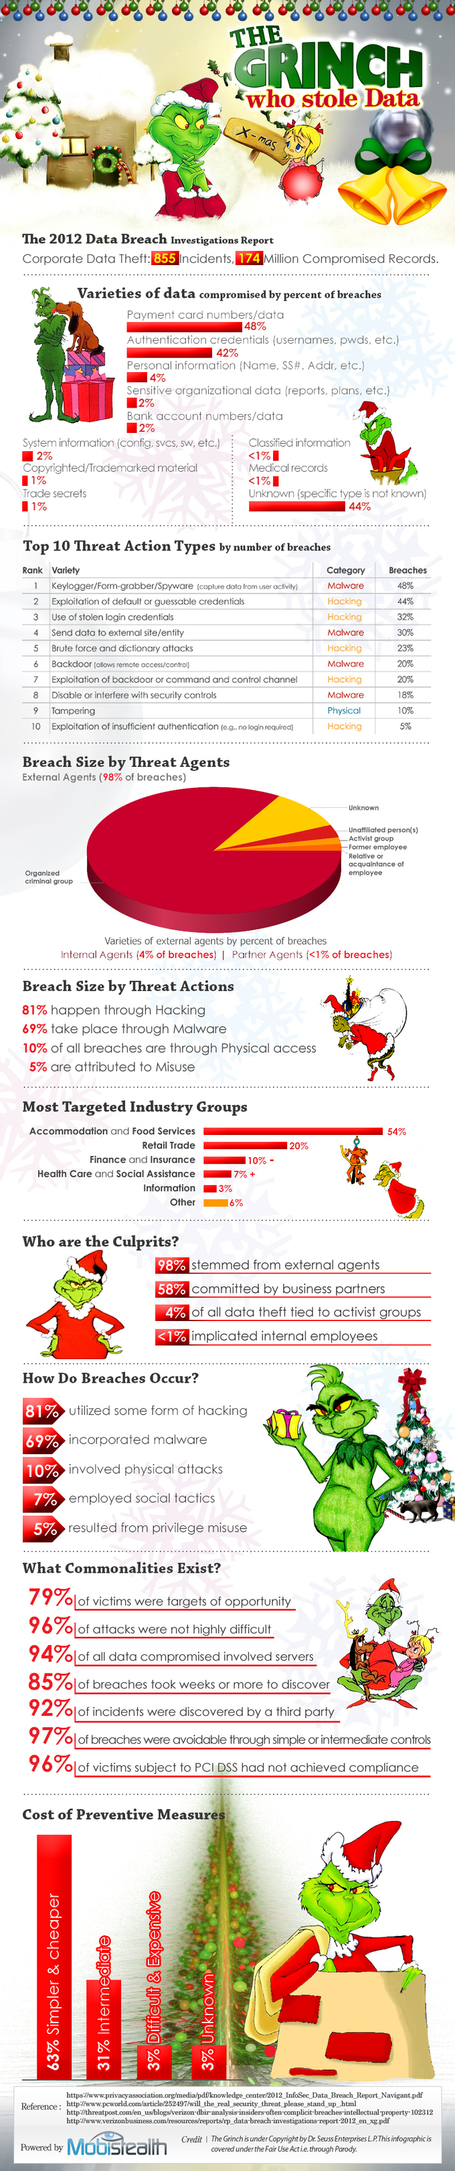 INFOGRAPHIC: The Grinch Who Stole Data | CloudTweaks | digitalassetman | Scoop.it